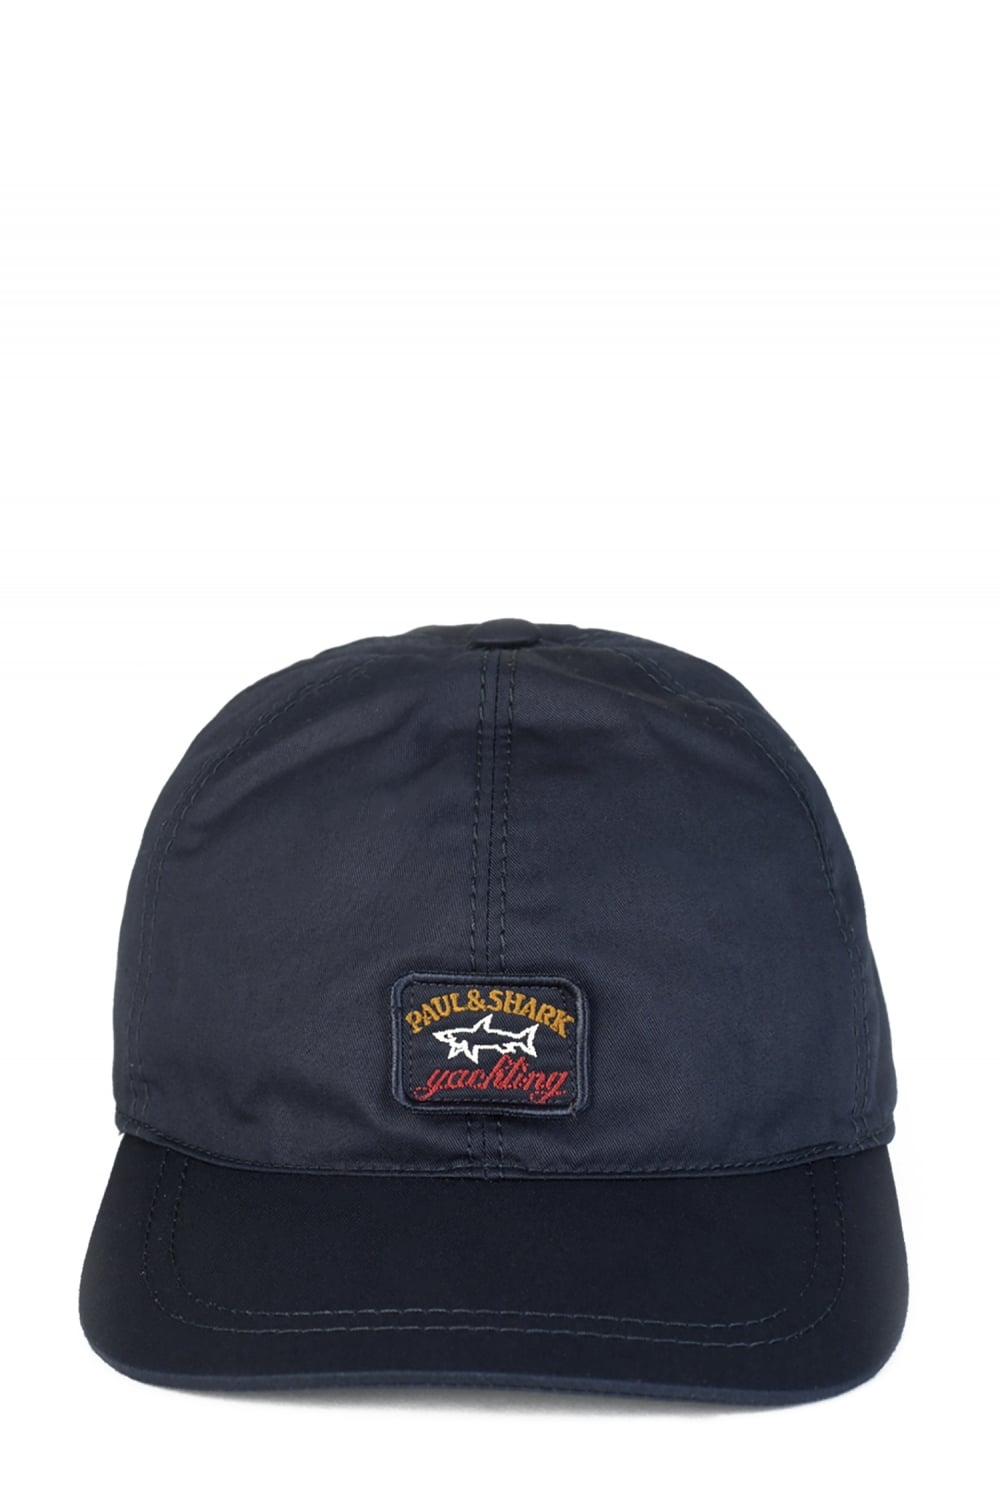 Paul   Shark Logo Classic Baseball Cap Navy e8395f4629d5